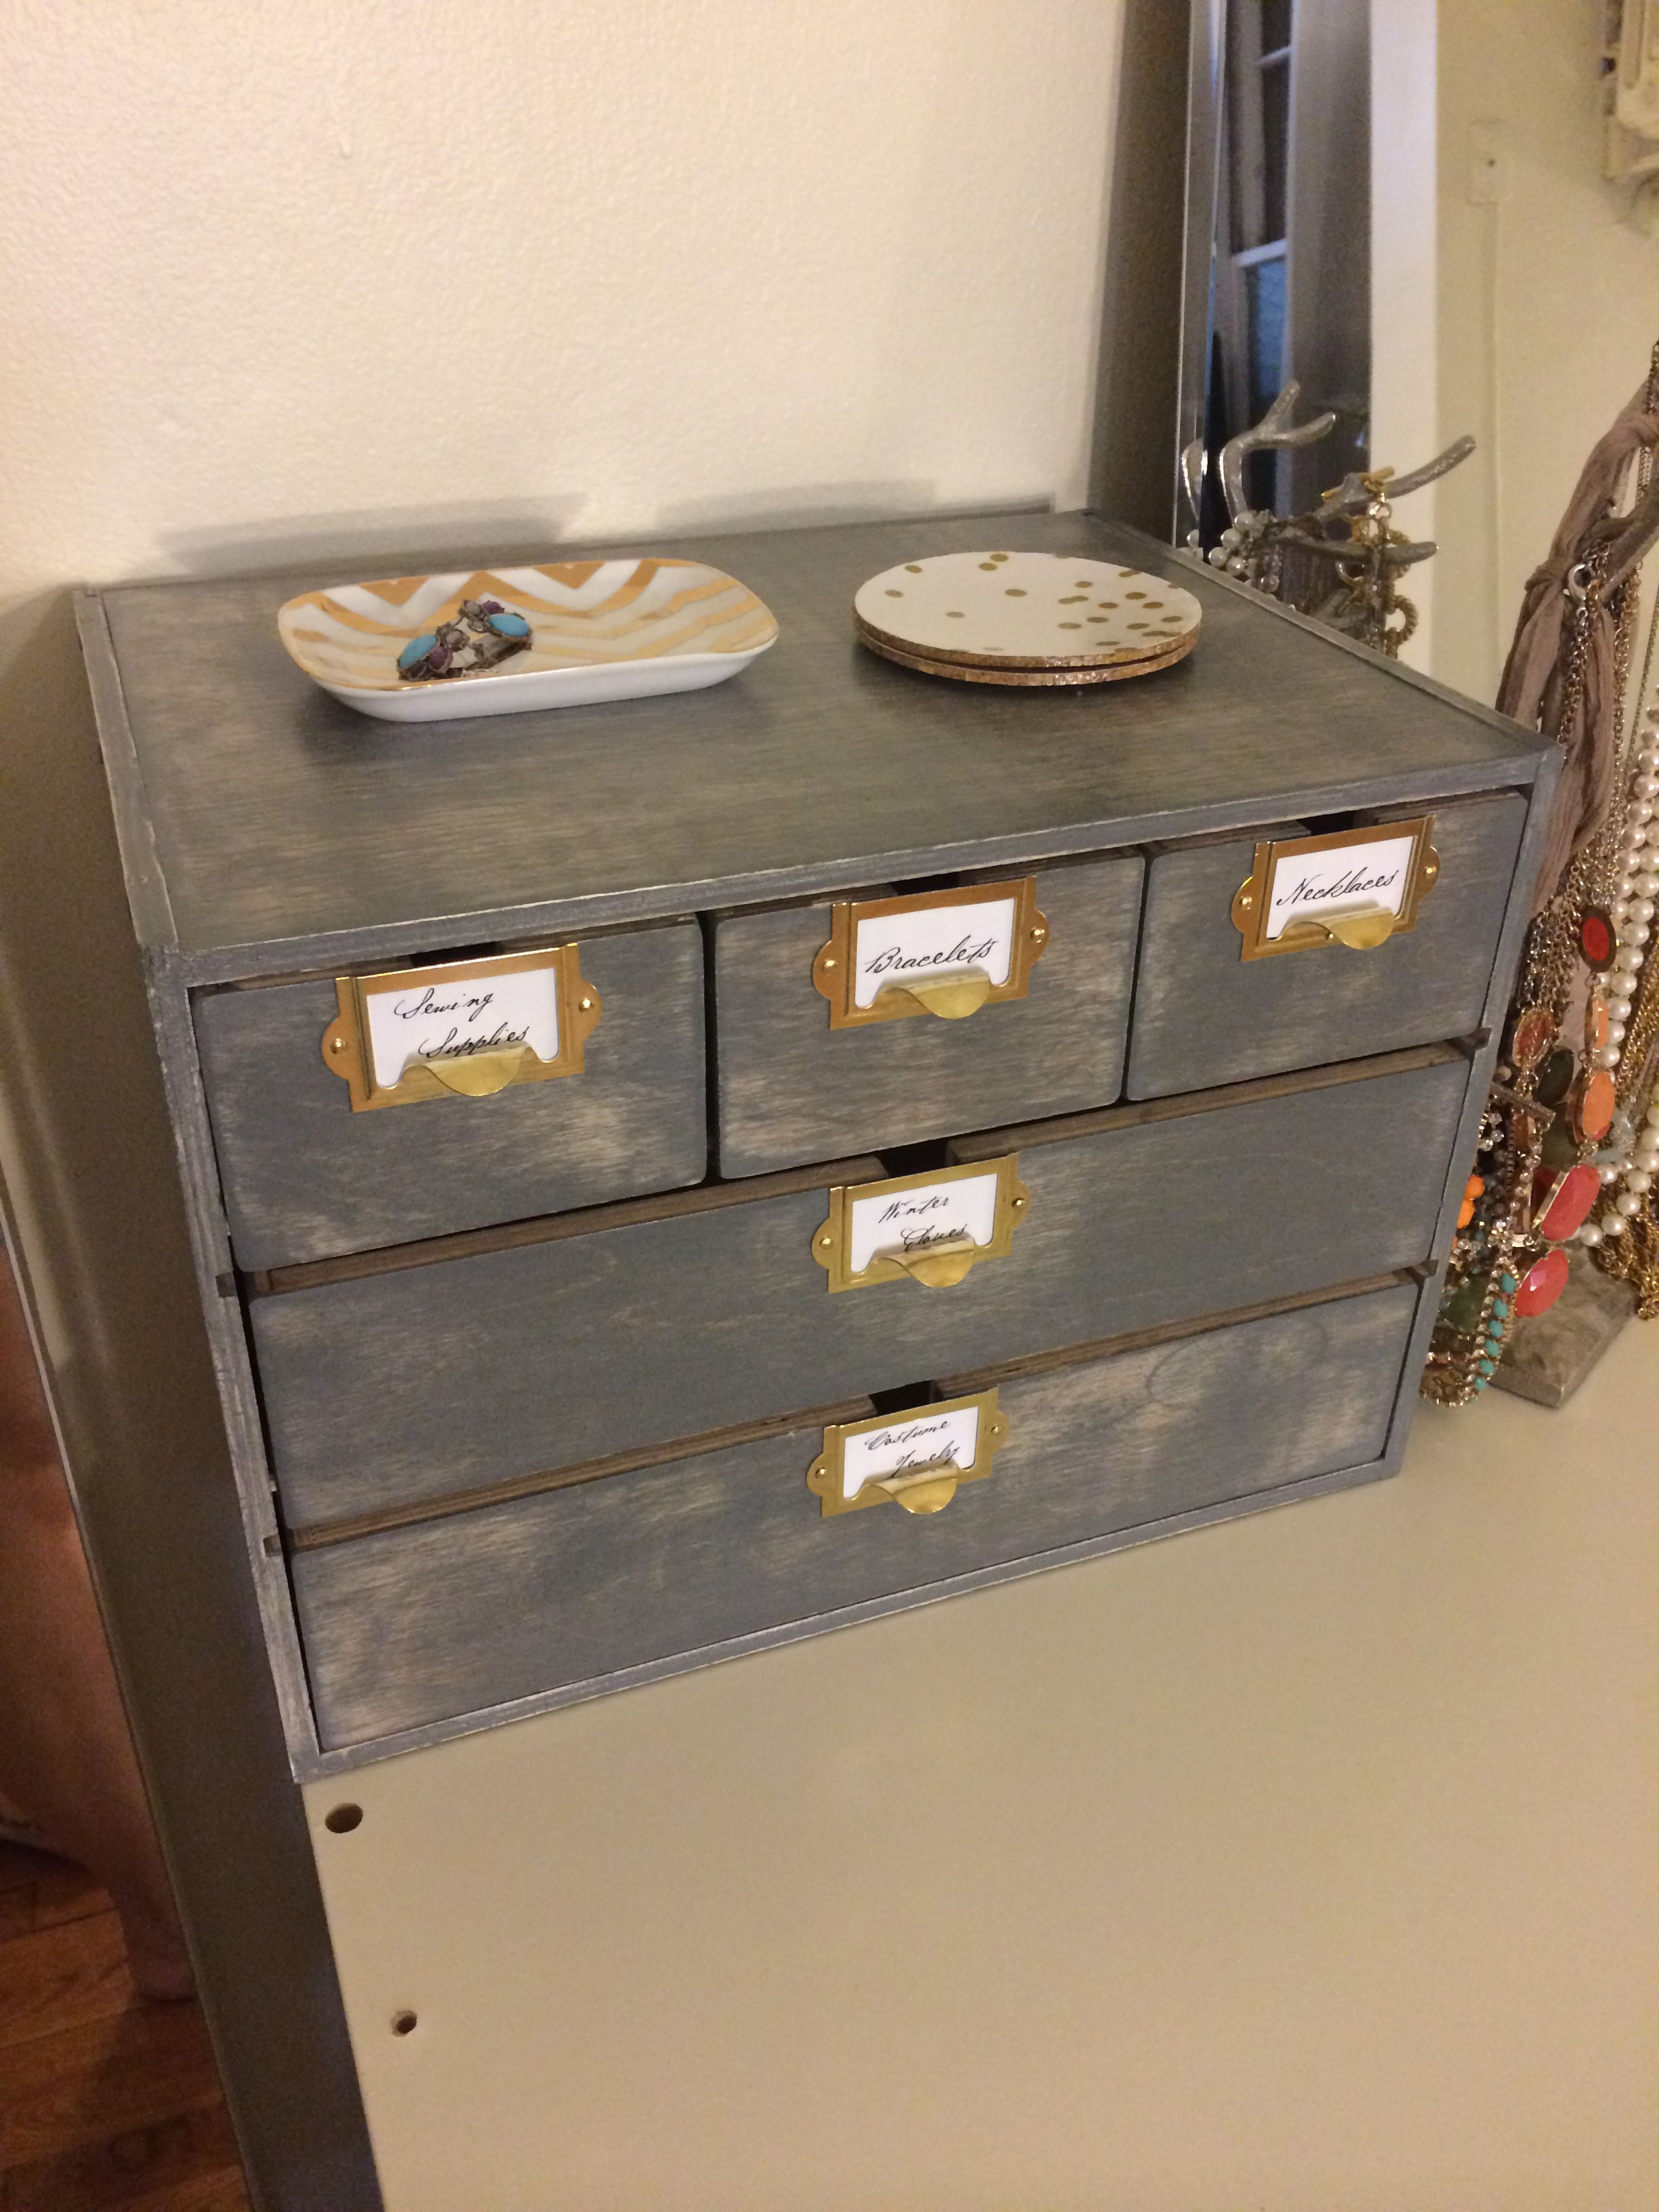 Inspired By Akadesign Similar Ikea Moppe Hack But With A Weathered Gray Stain And Hardware From Etsy